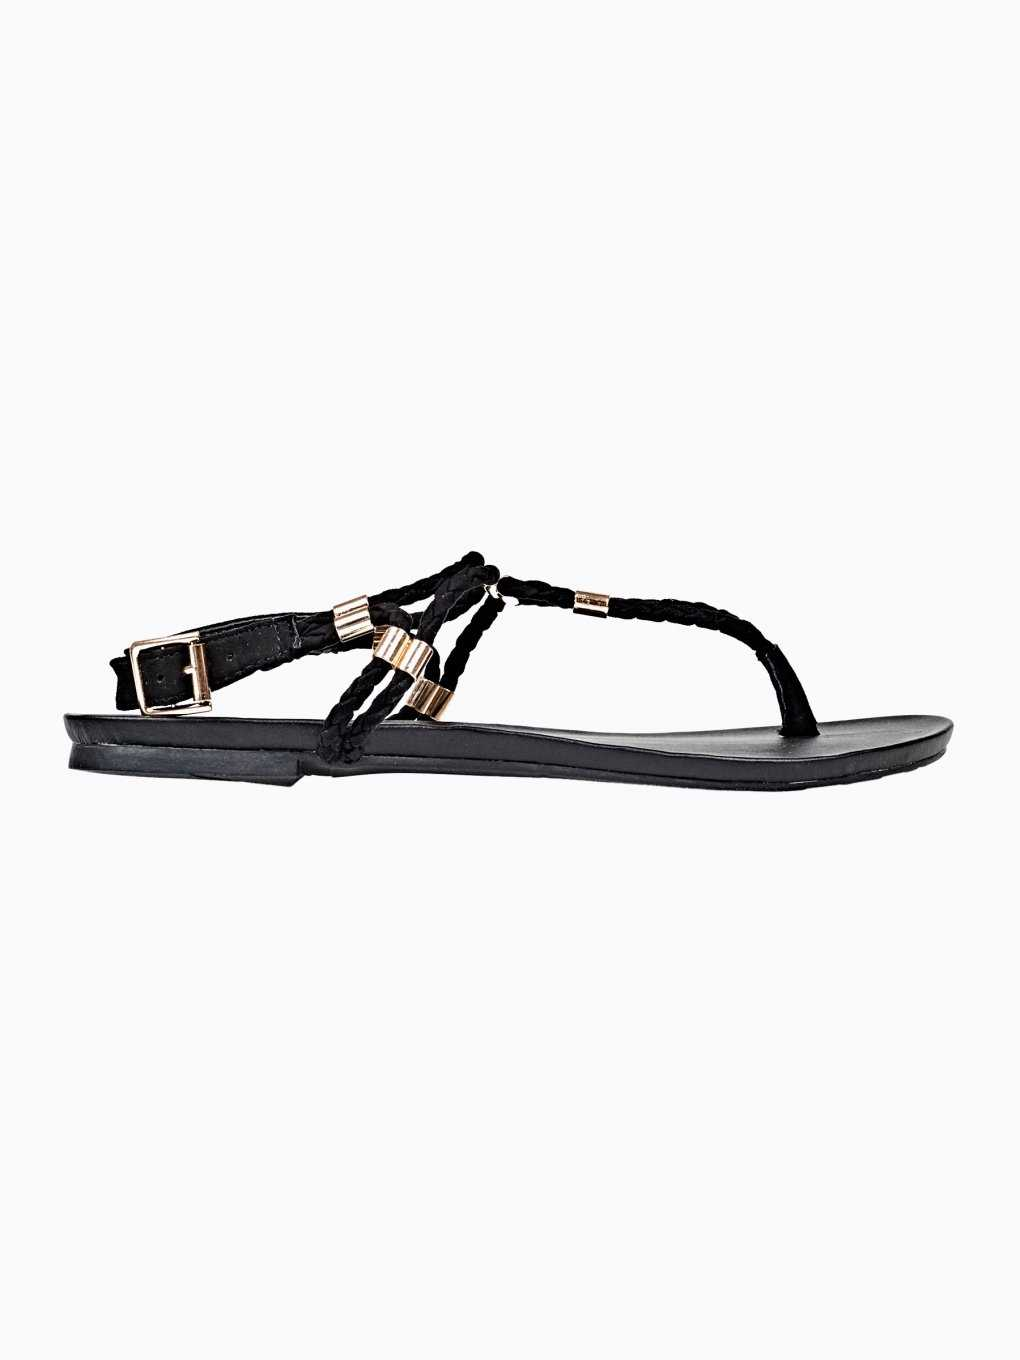 SANDALS WITH METAL DETAILS